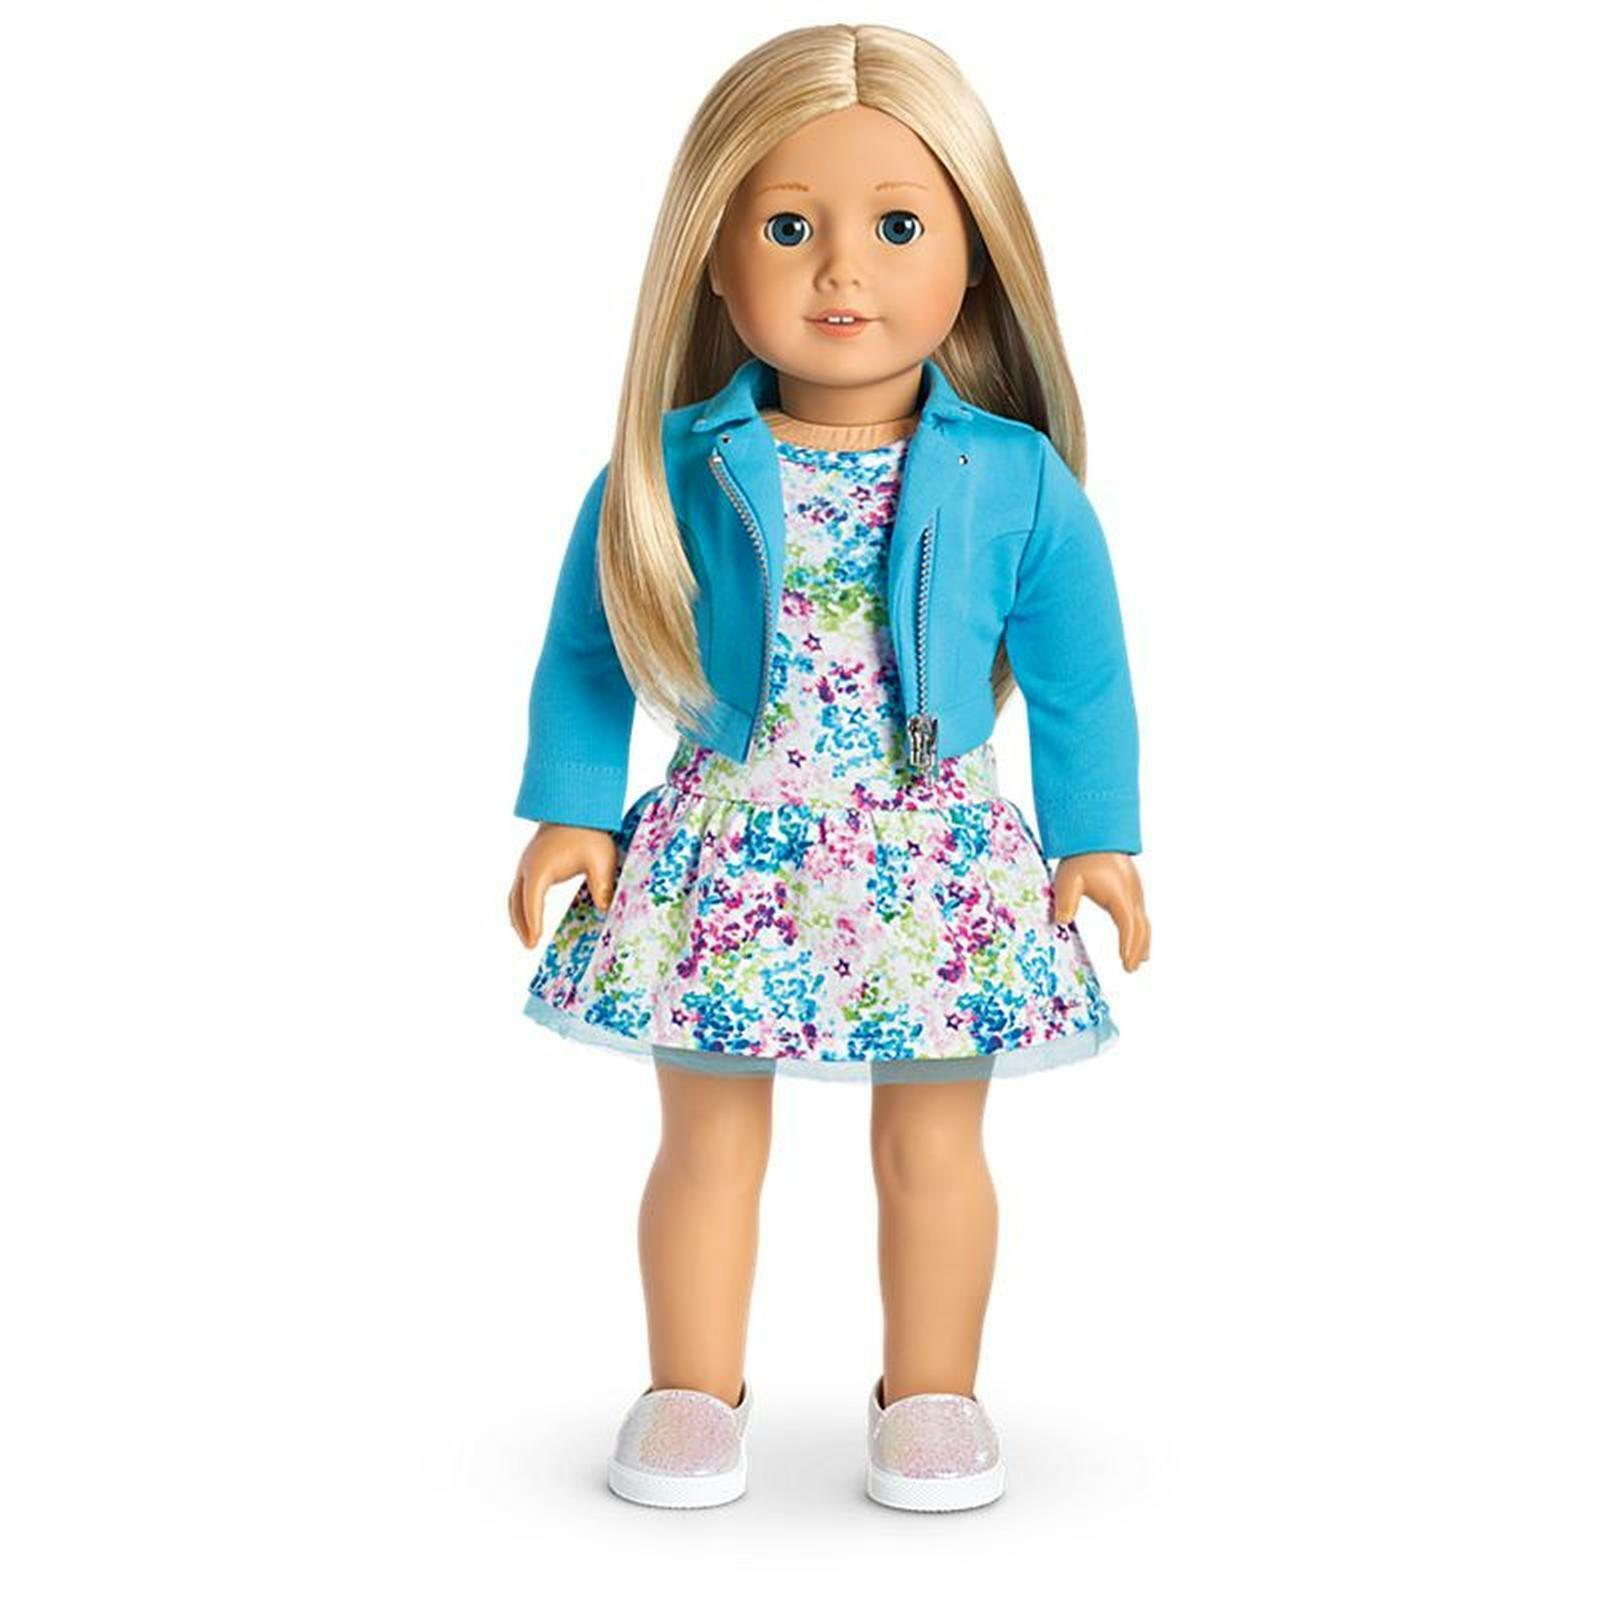 American Girl Truly Me Doll No 27- New Style - New in Box - Free DHL Express